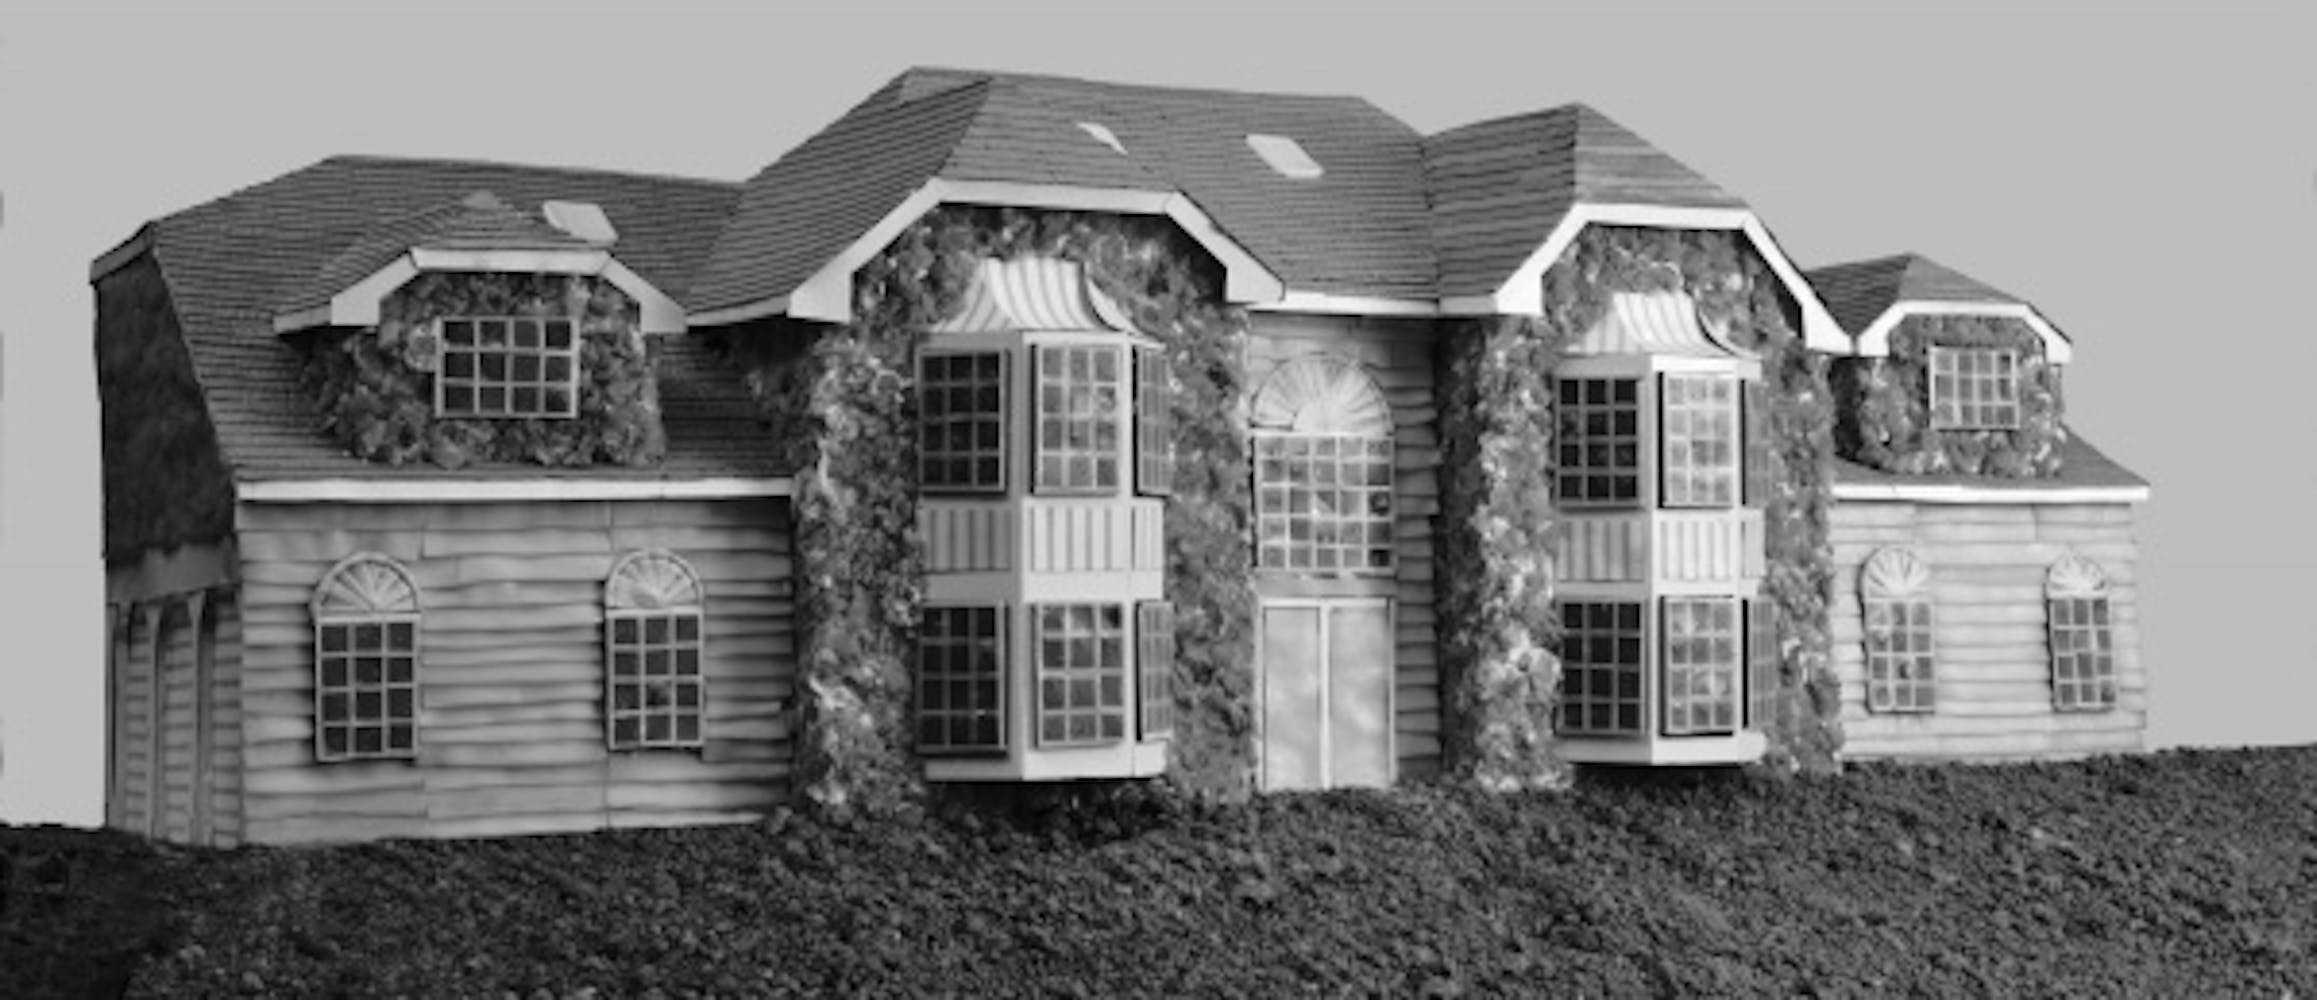 Lee Stoetzel, McMansion 2, 2005